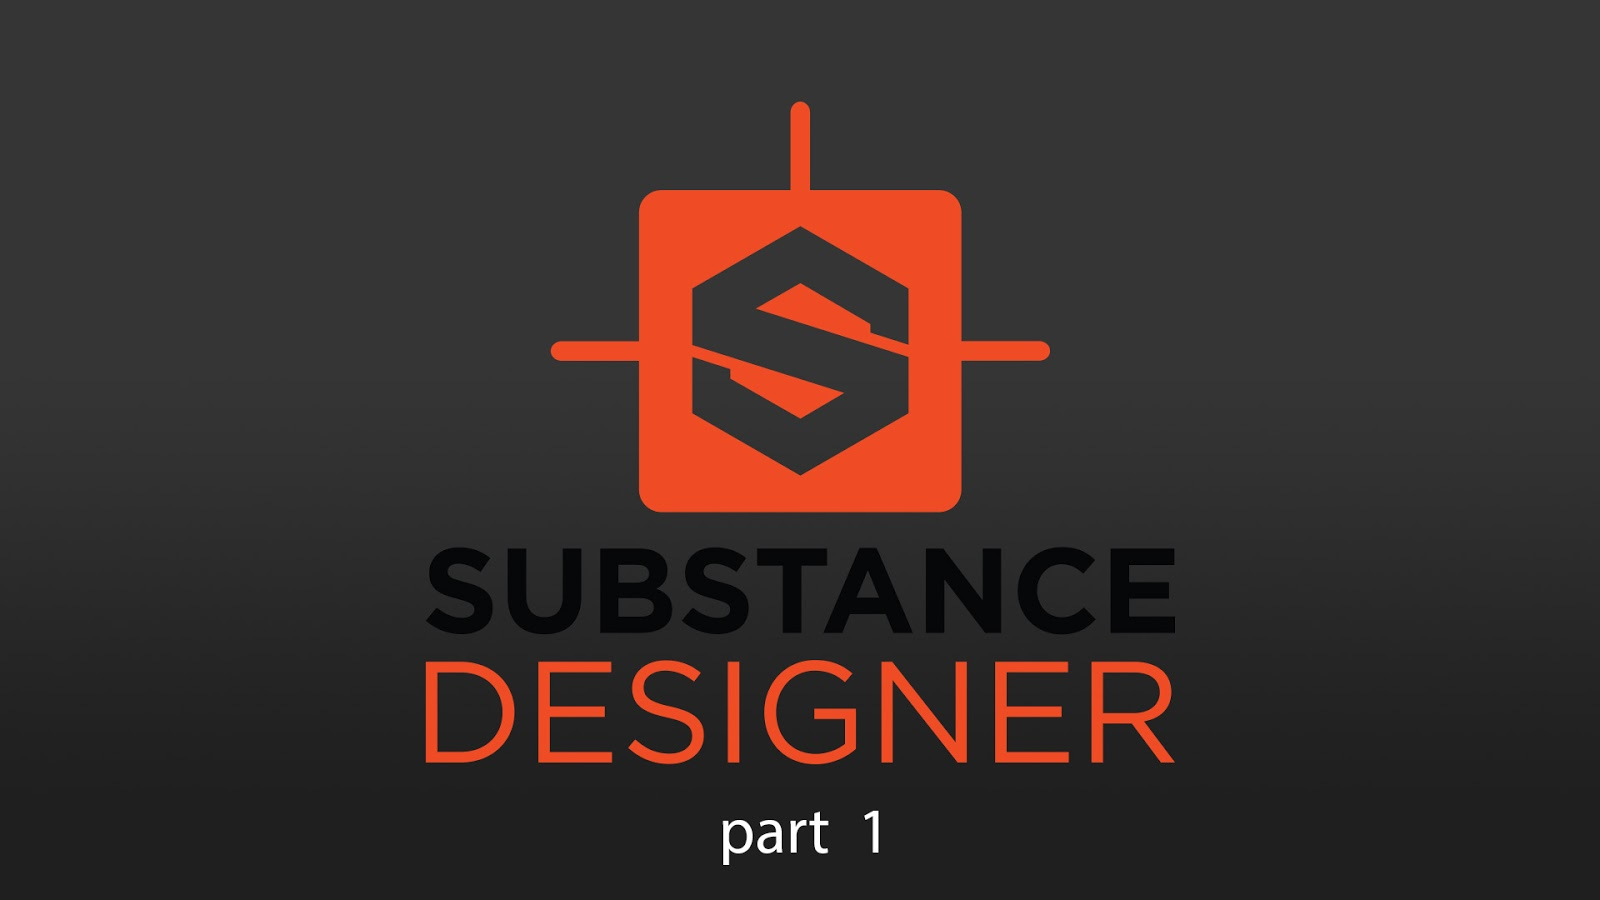 Substance_designer_part1.jpg